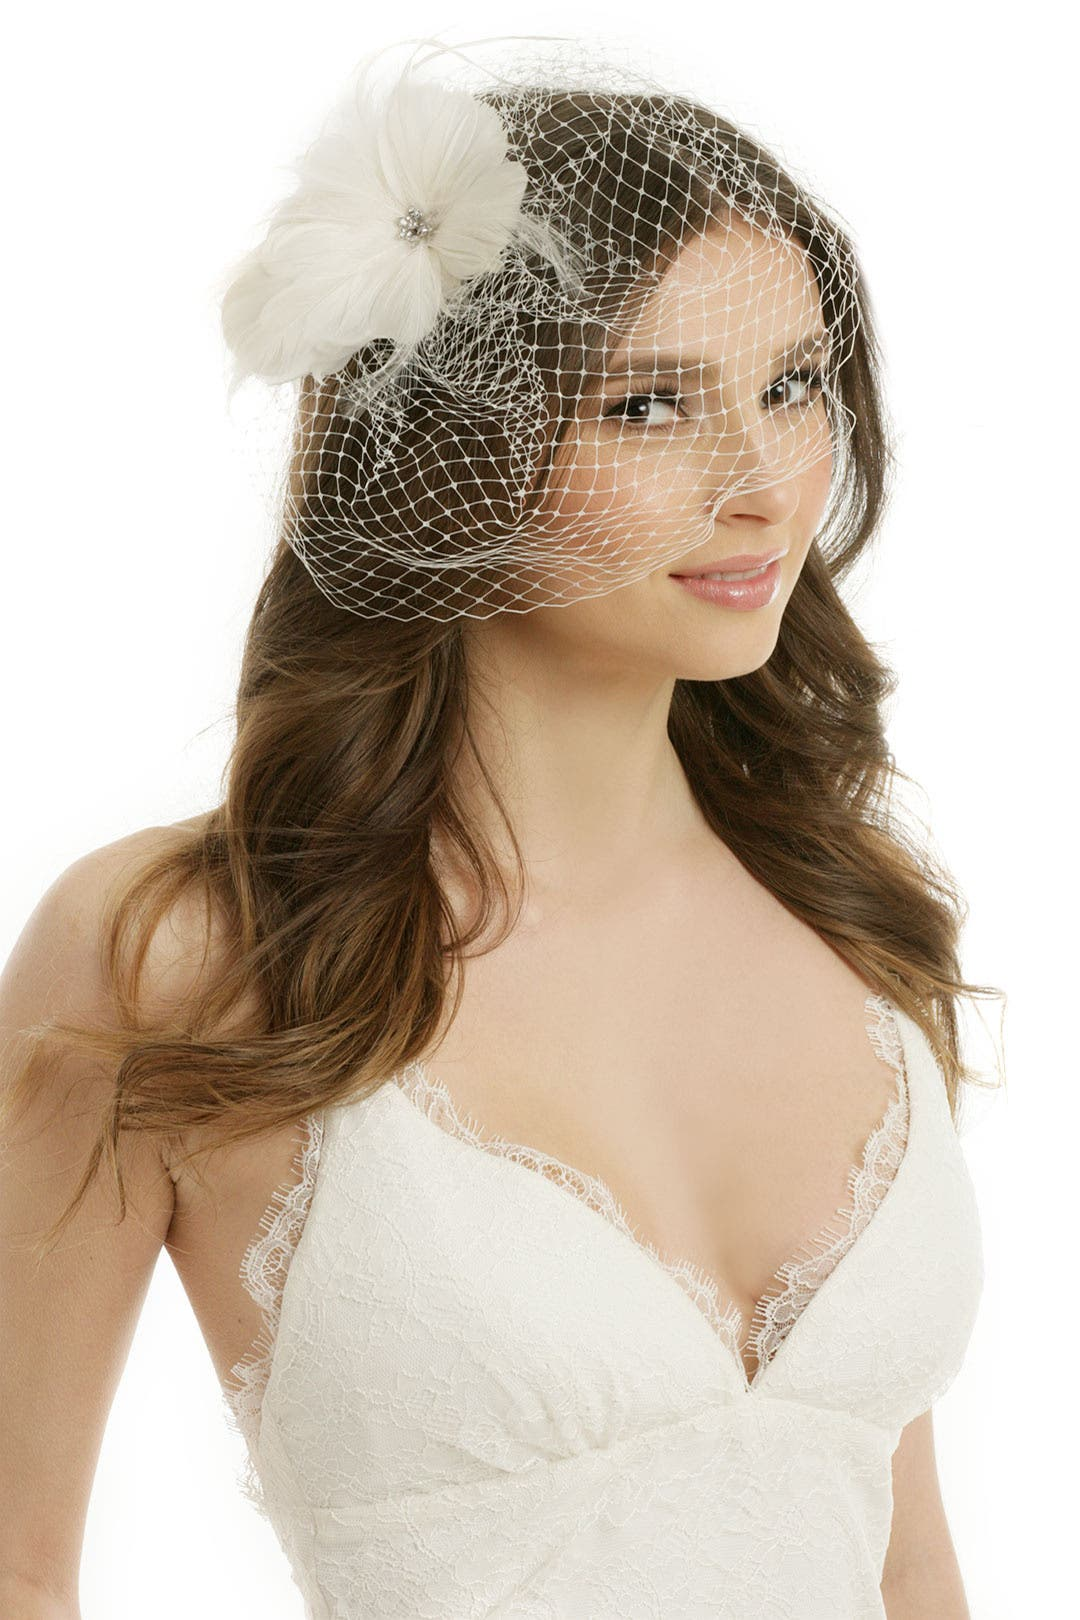 come fly with me veil by rtr bridal accessories for $15 | rent the